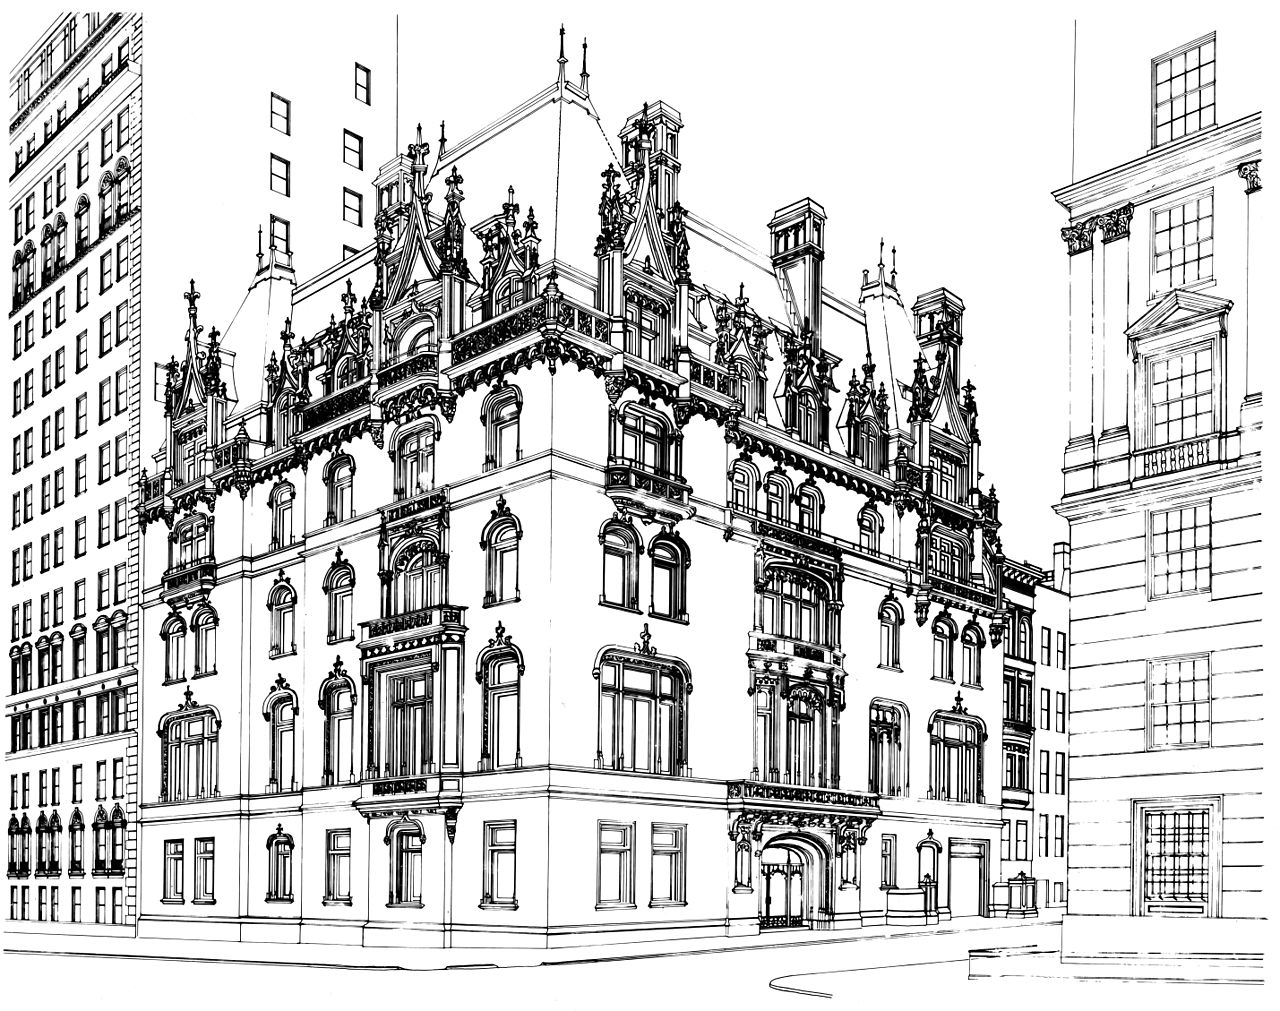 Line Drawing Buildings : File jewish museum building line drawing b w ppi